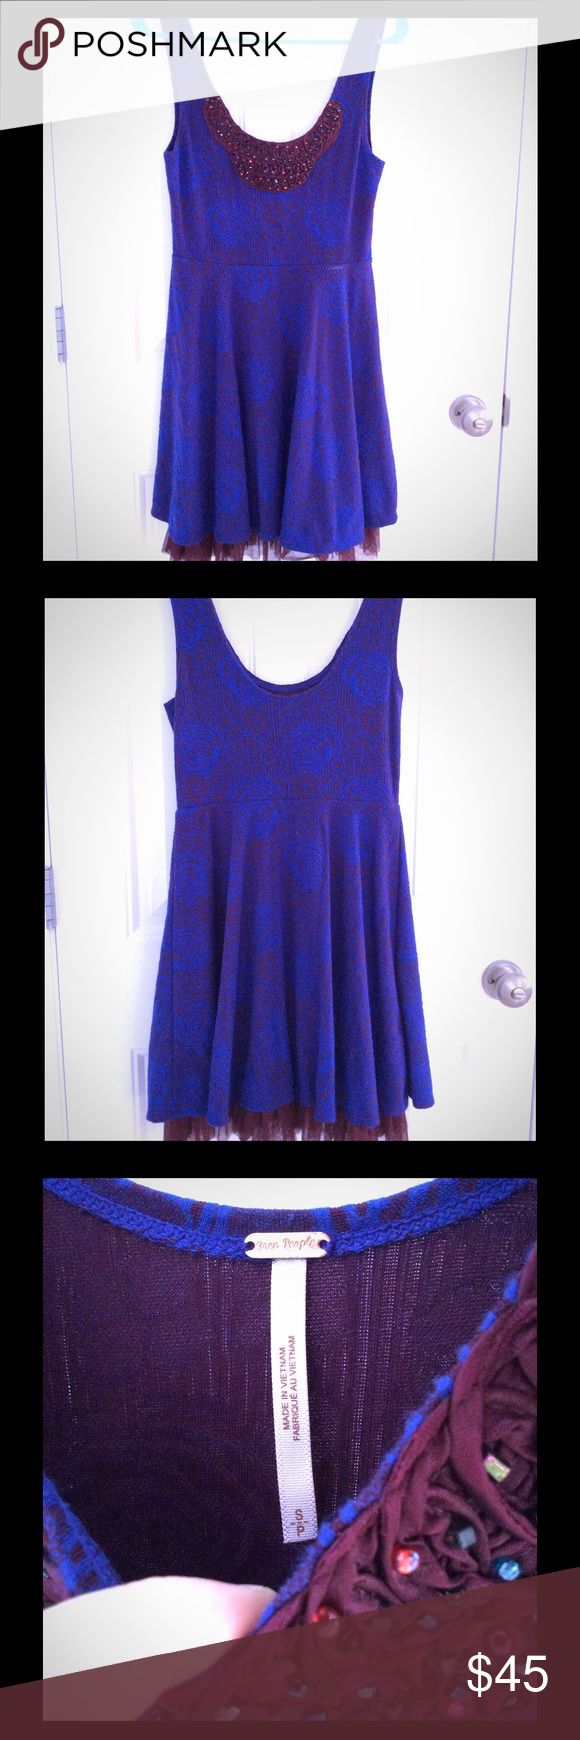 Free People Dress size Small Really comfortable Free People dress size small. This dress has a layer of maroon tulle underneath to give the dress some flare :) This dress is super flattering on! Free People Dresses